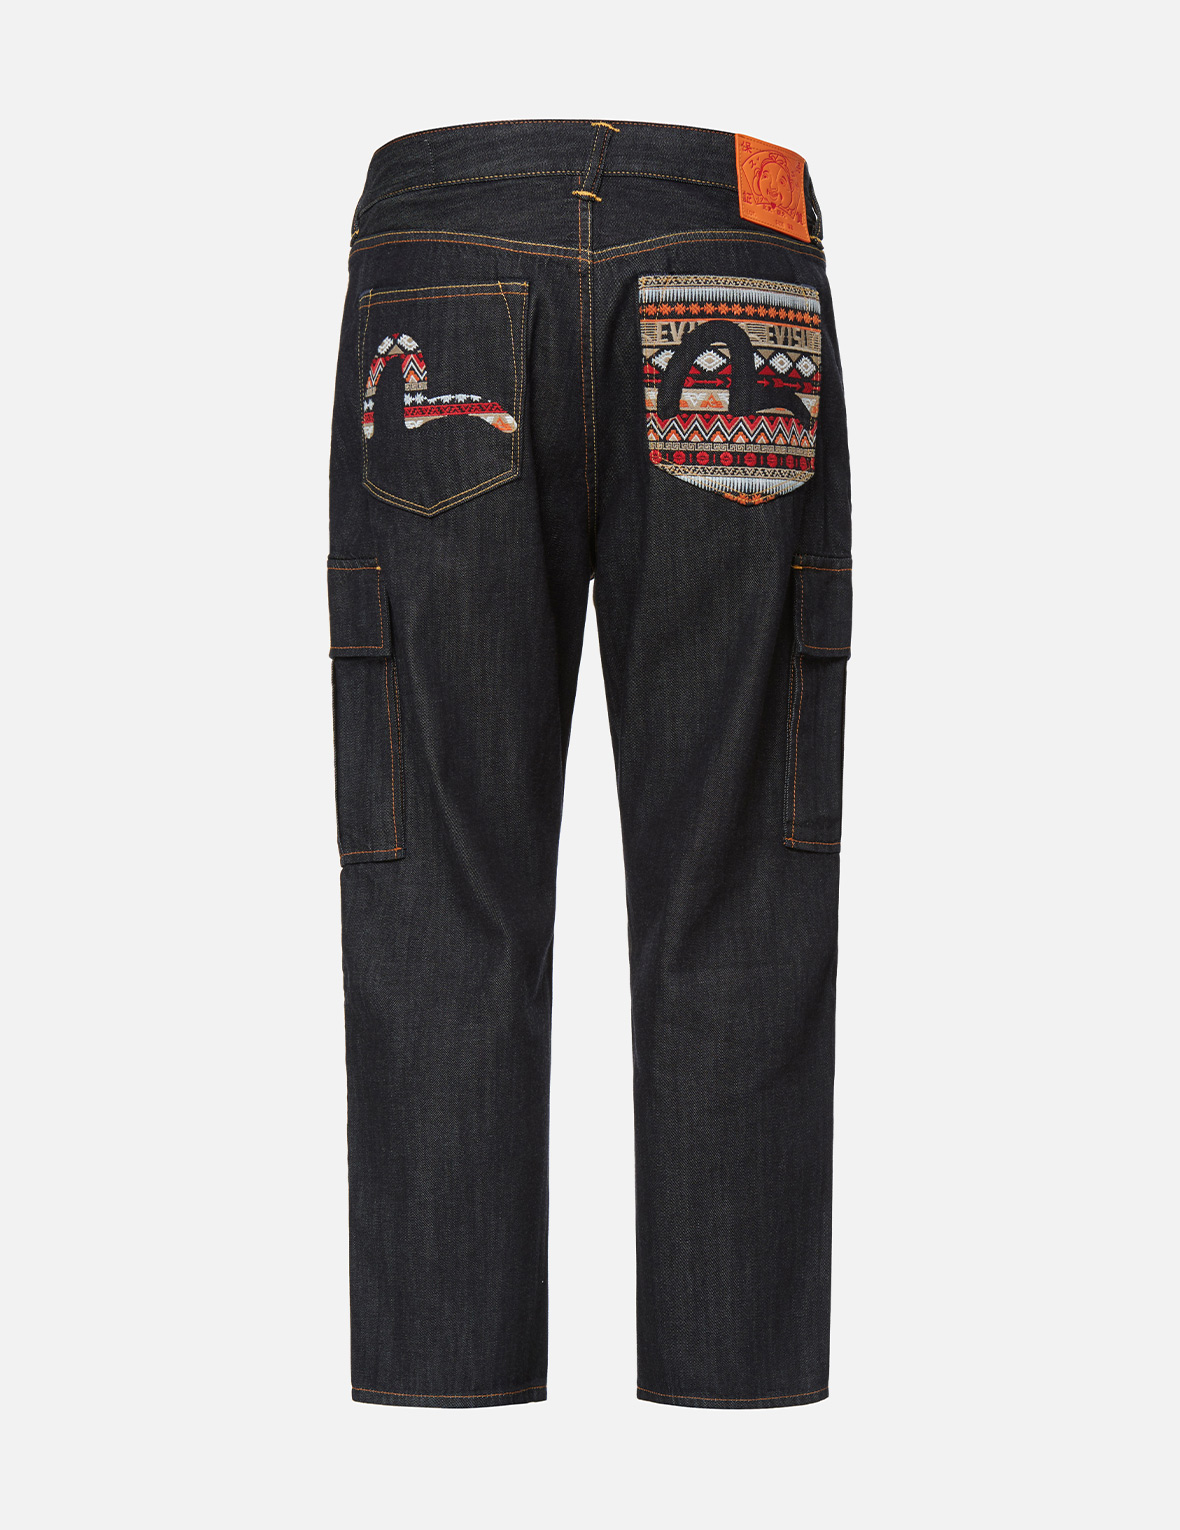 Folklore-pattern Seagull Embroidered Cargo Jeans